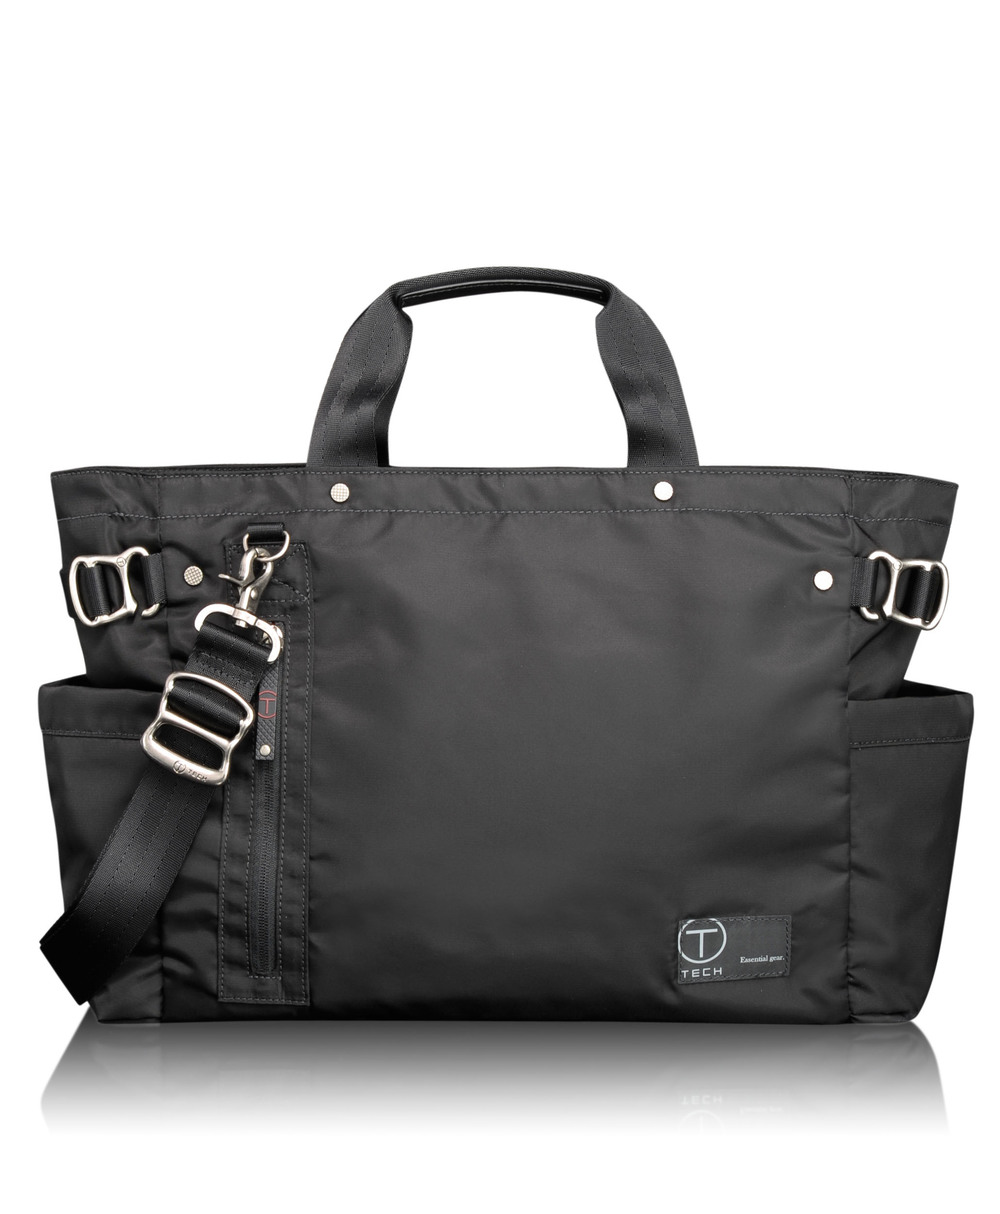 57520 Black T-Tech Icon Wilson E-W Tote.jpg